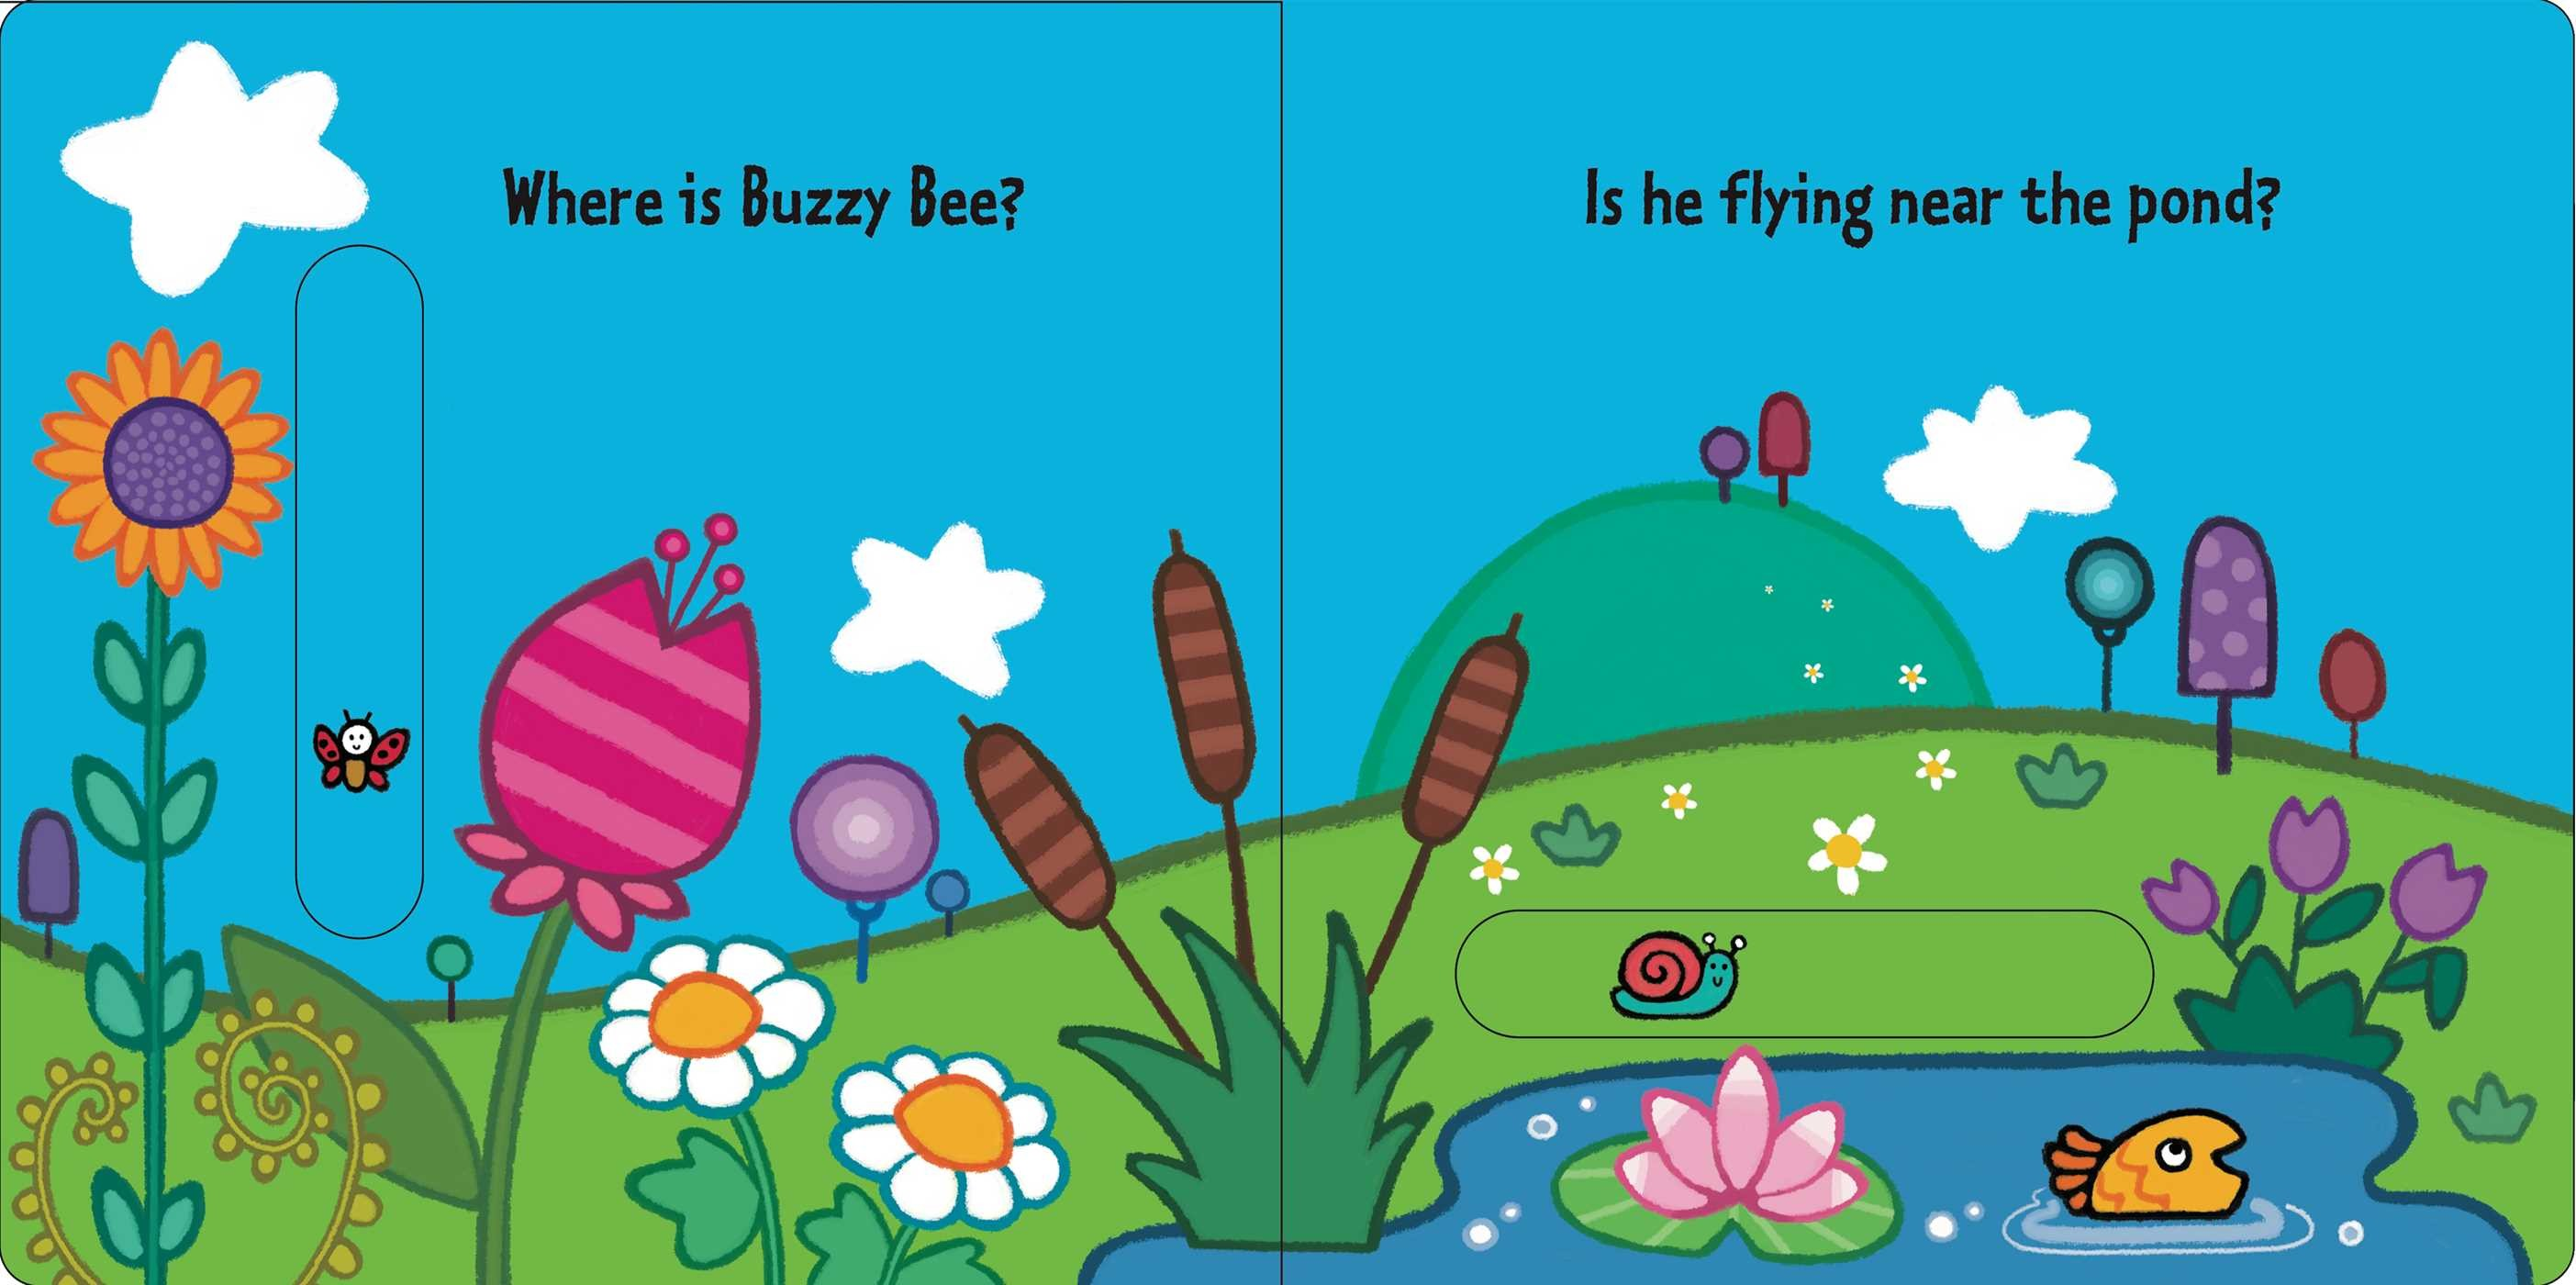 Buzzy bee 9781499804690.in01